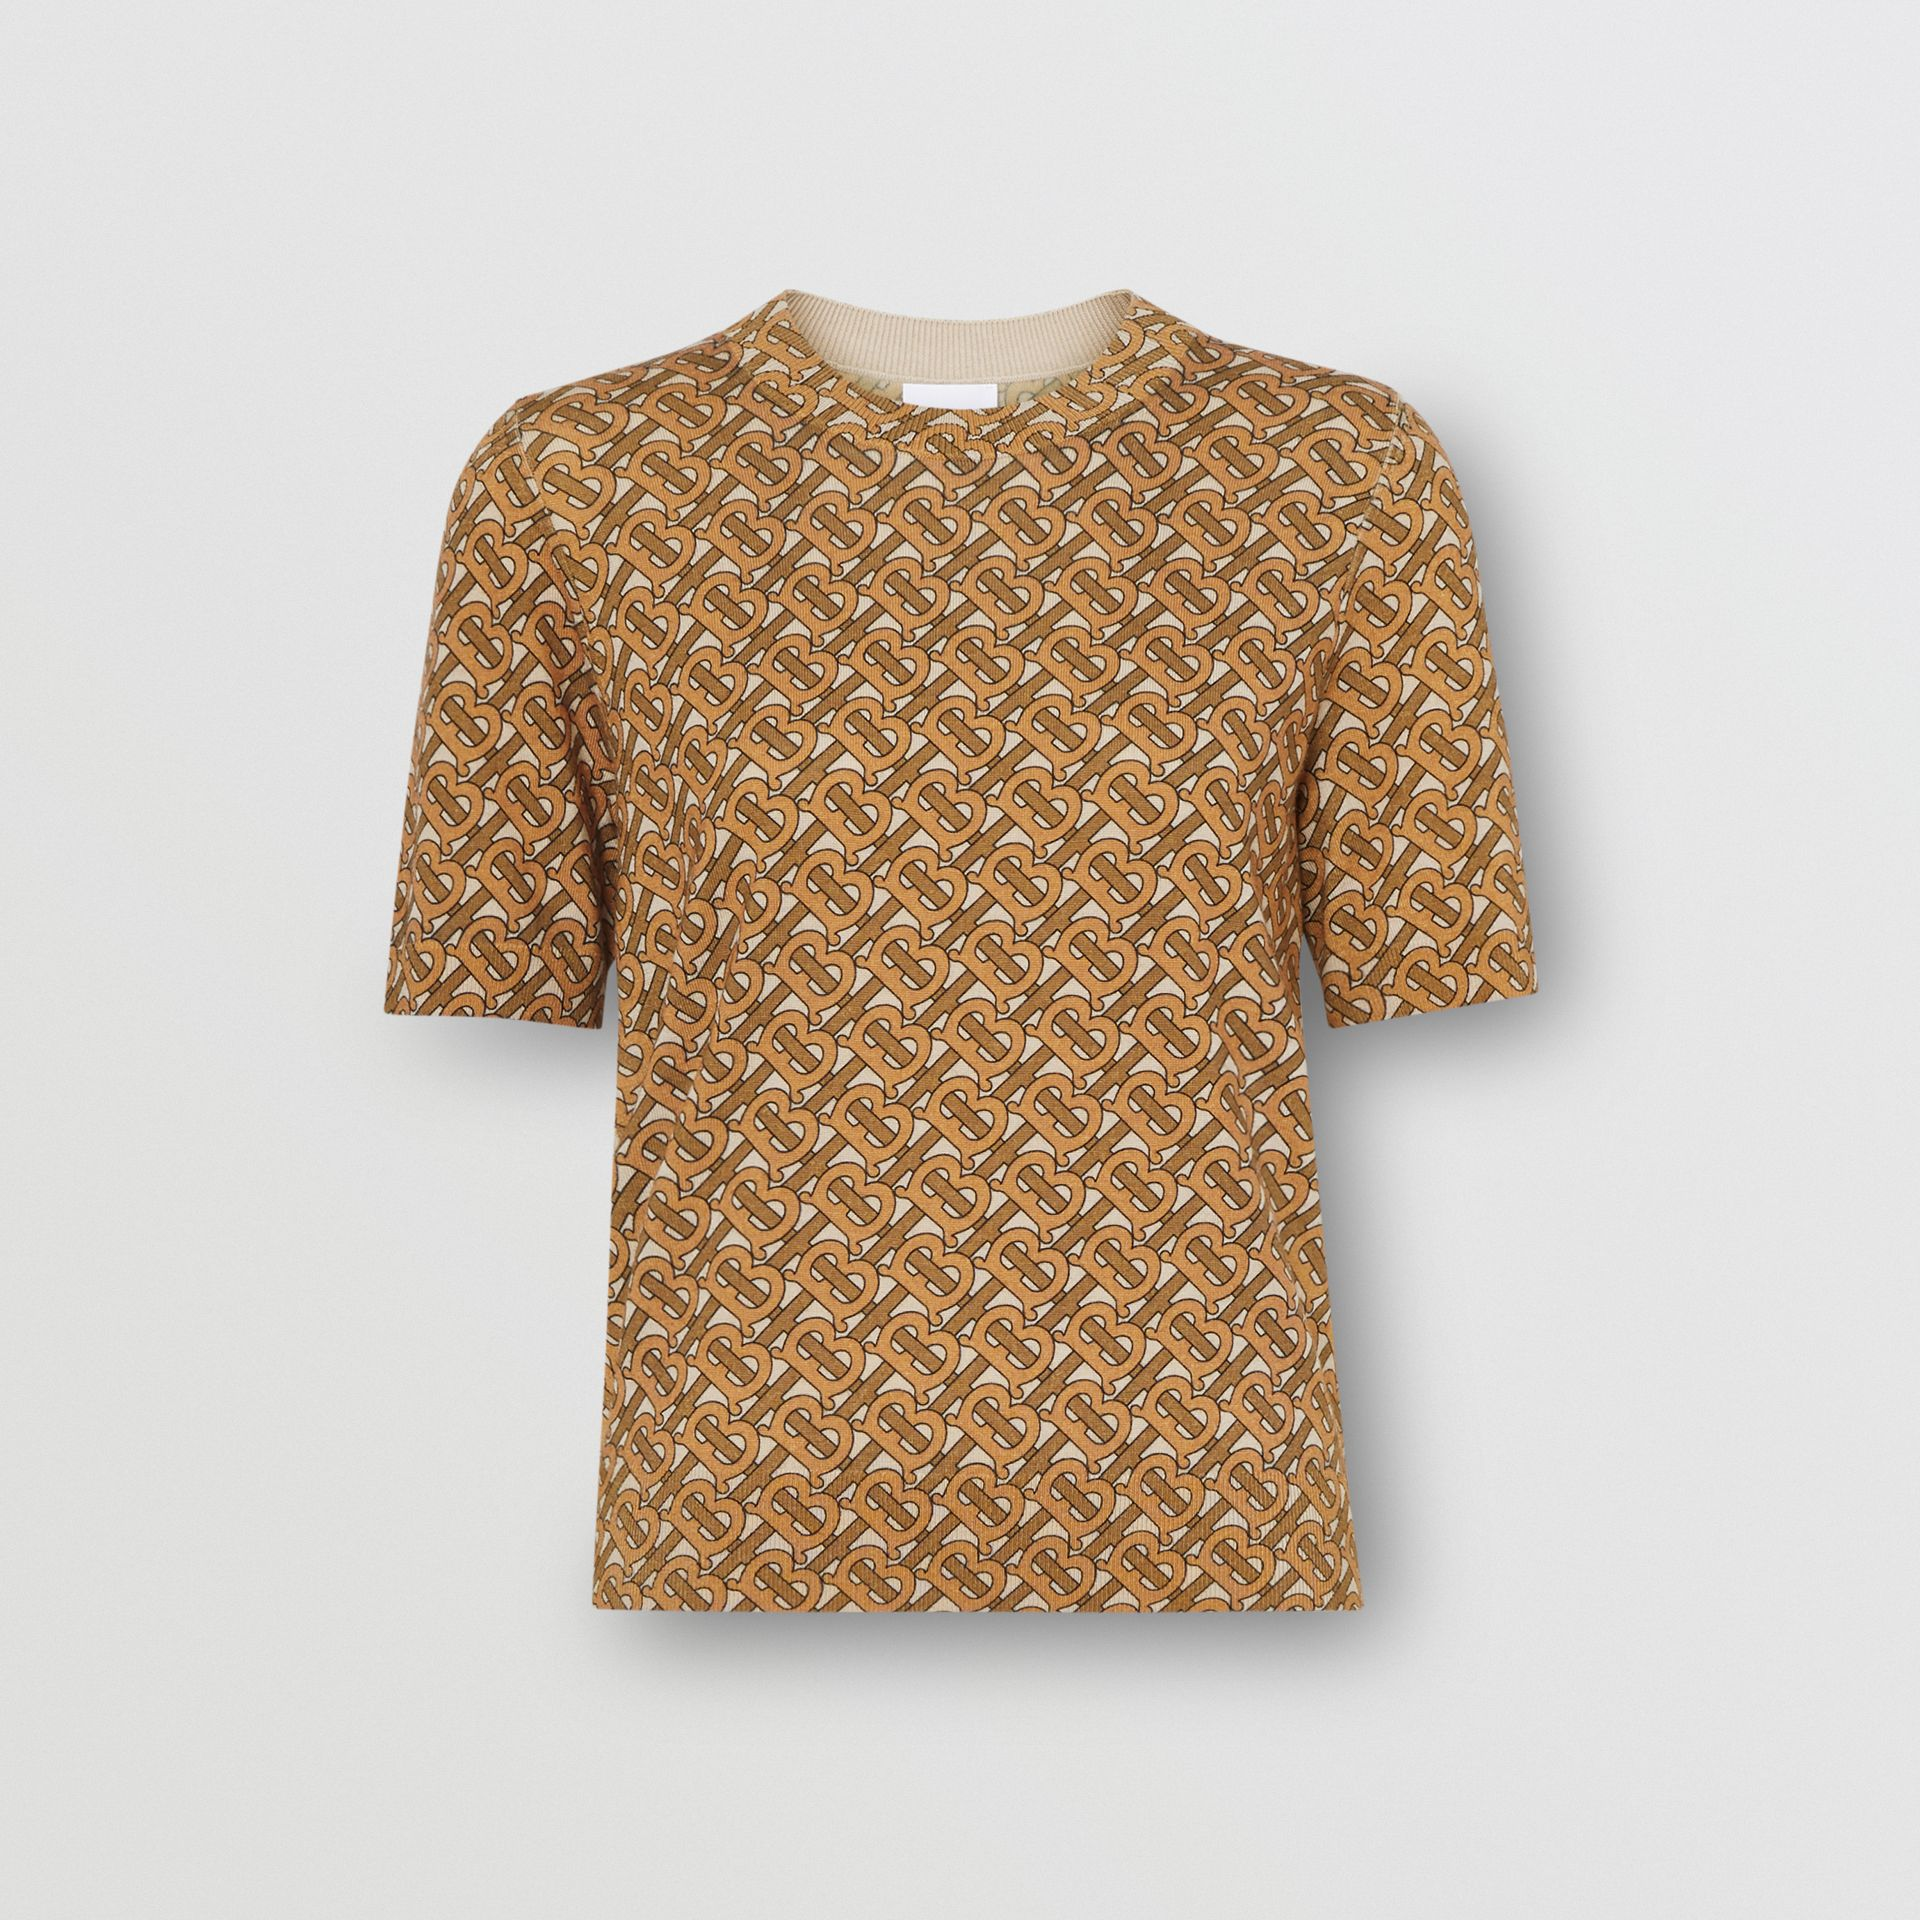 Monogram Print Merino Wool Top in Beige - Women | Burberry - gallery image 3